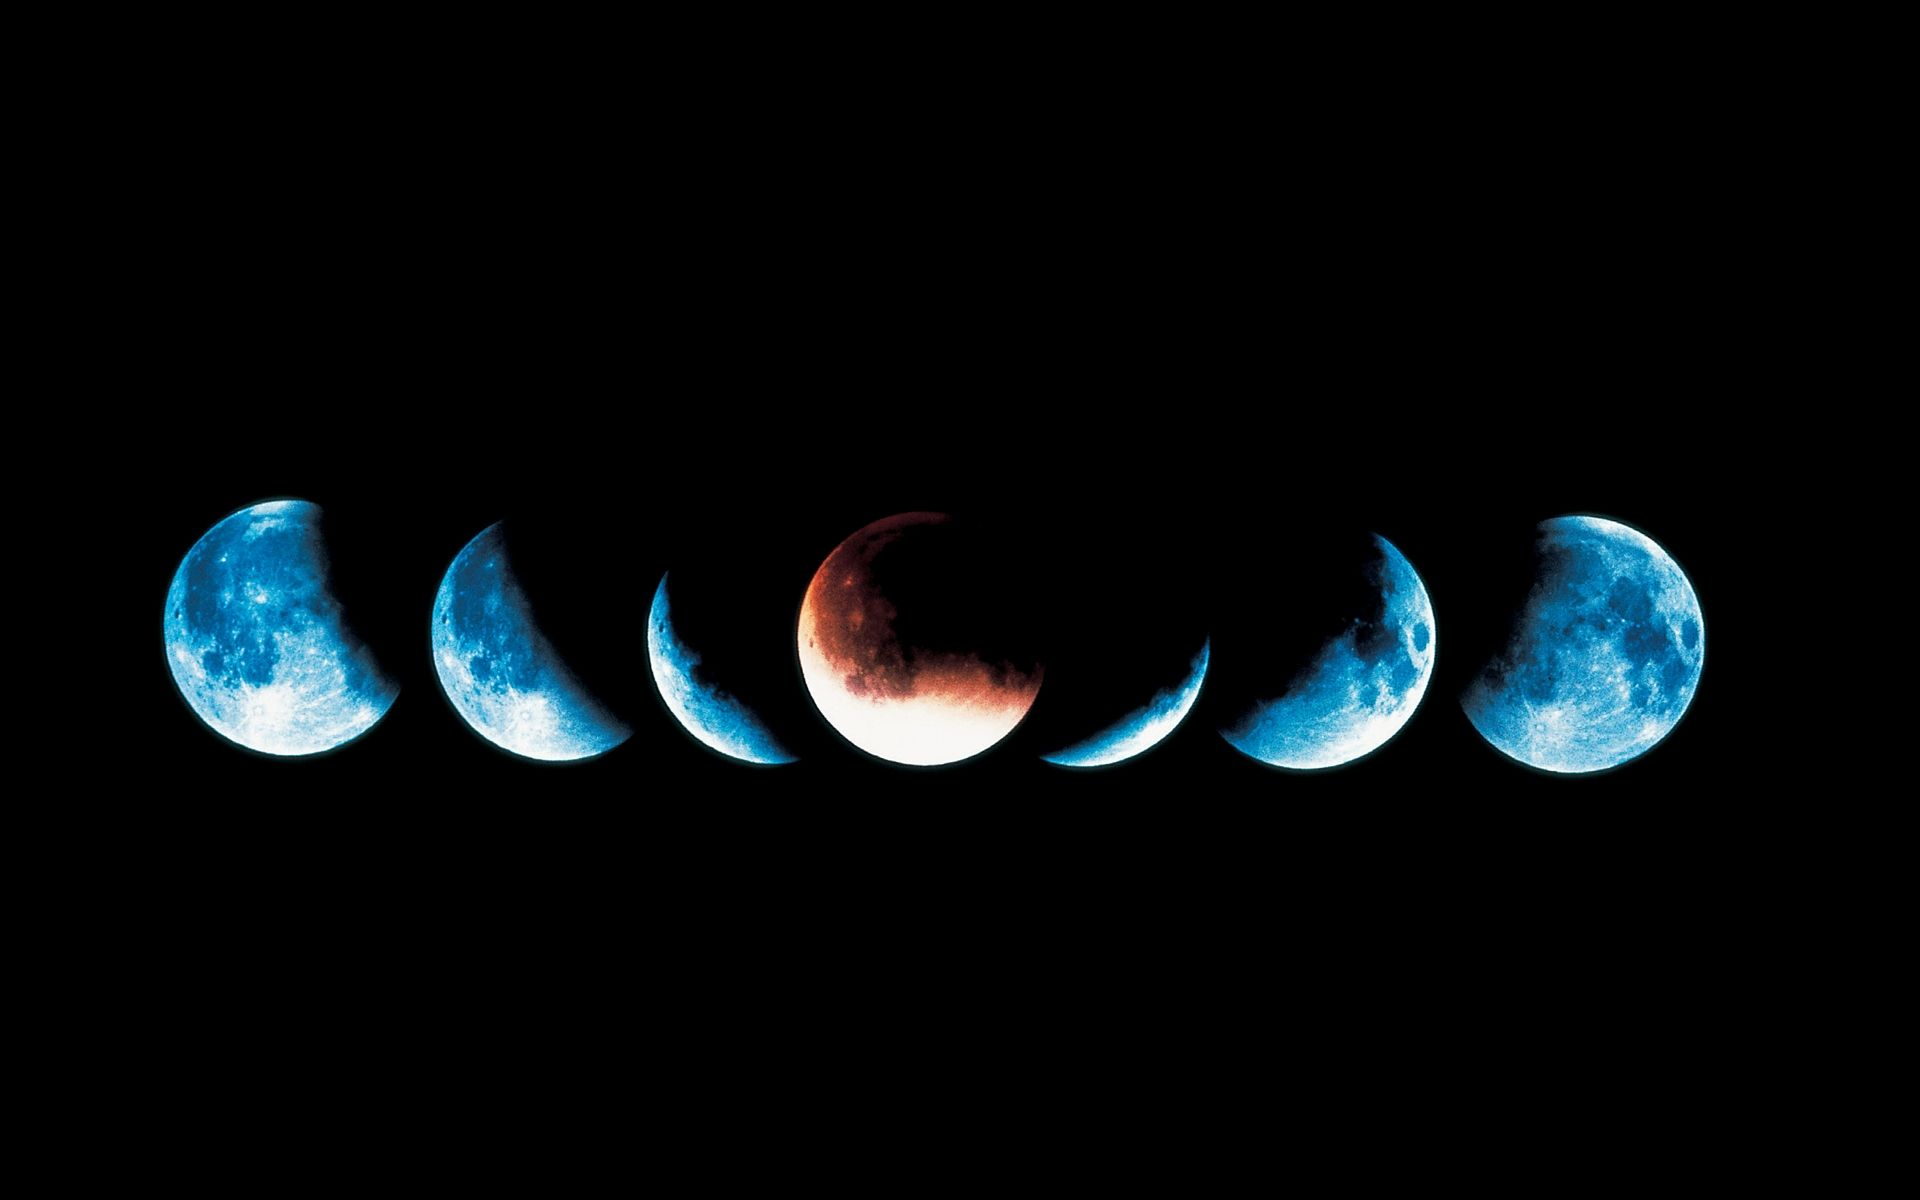 wallpaper eclipse planets space background wallpapers on eclipse pictures wallpapers wallpapers